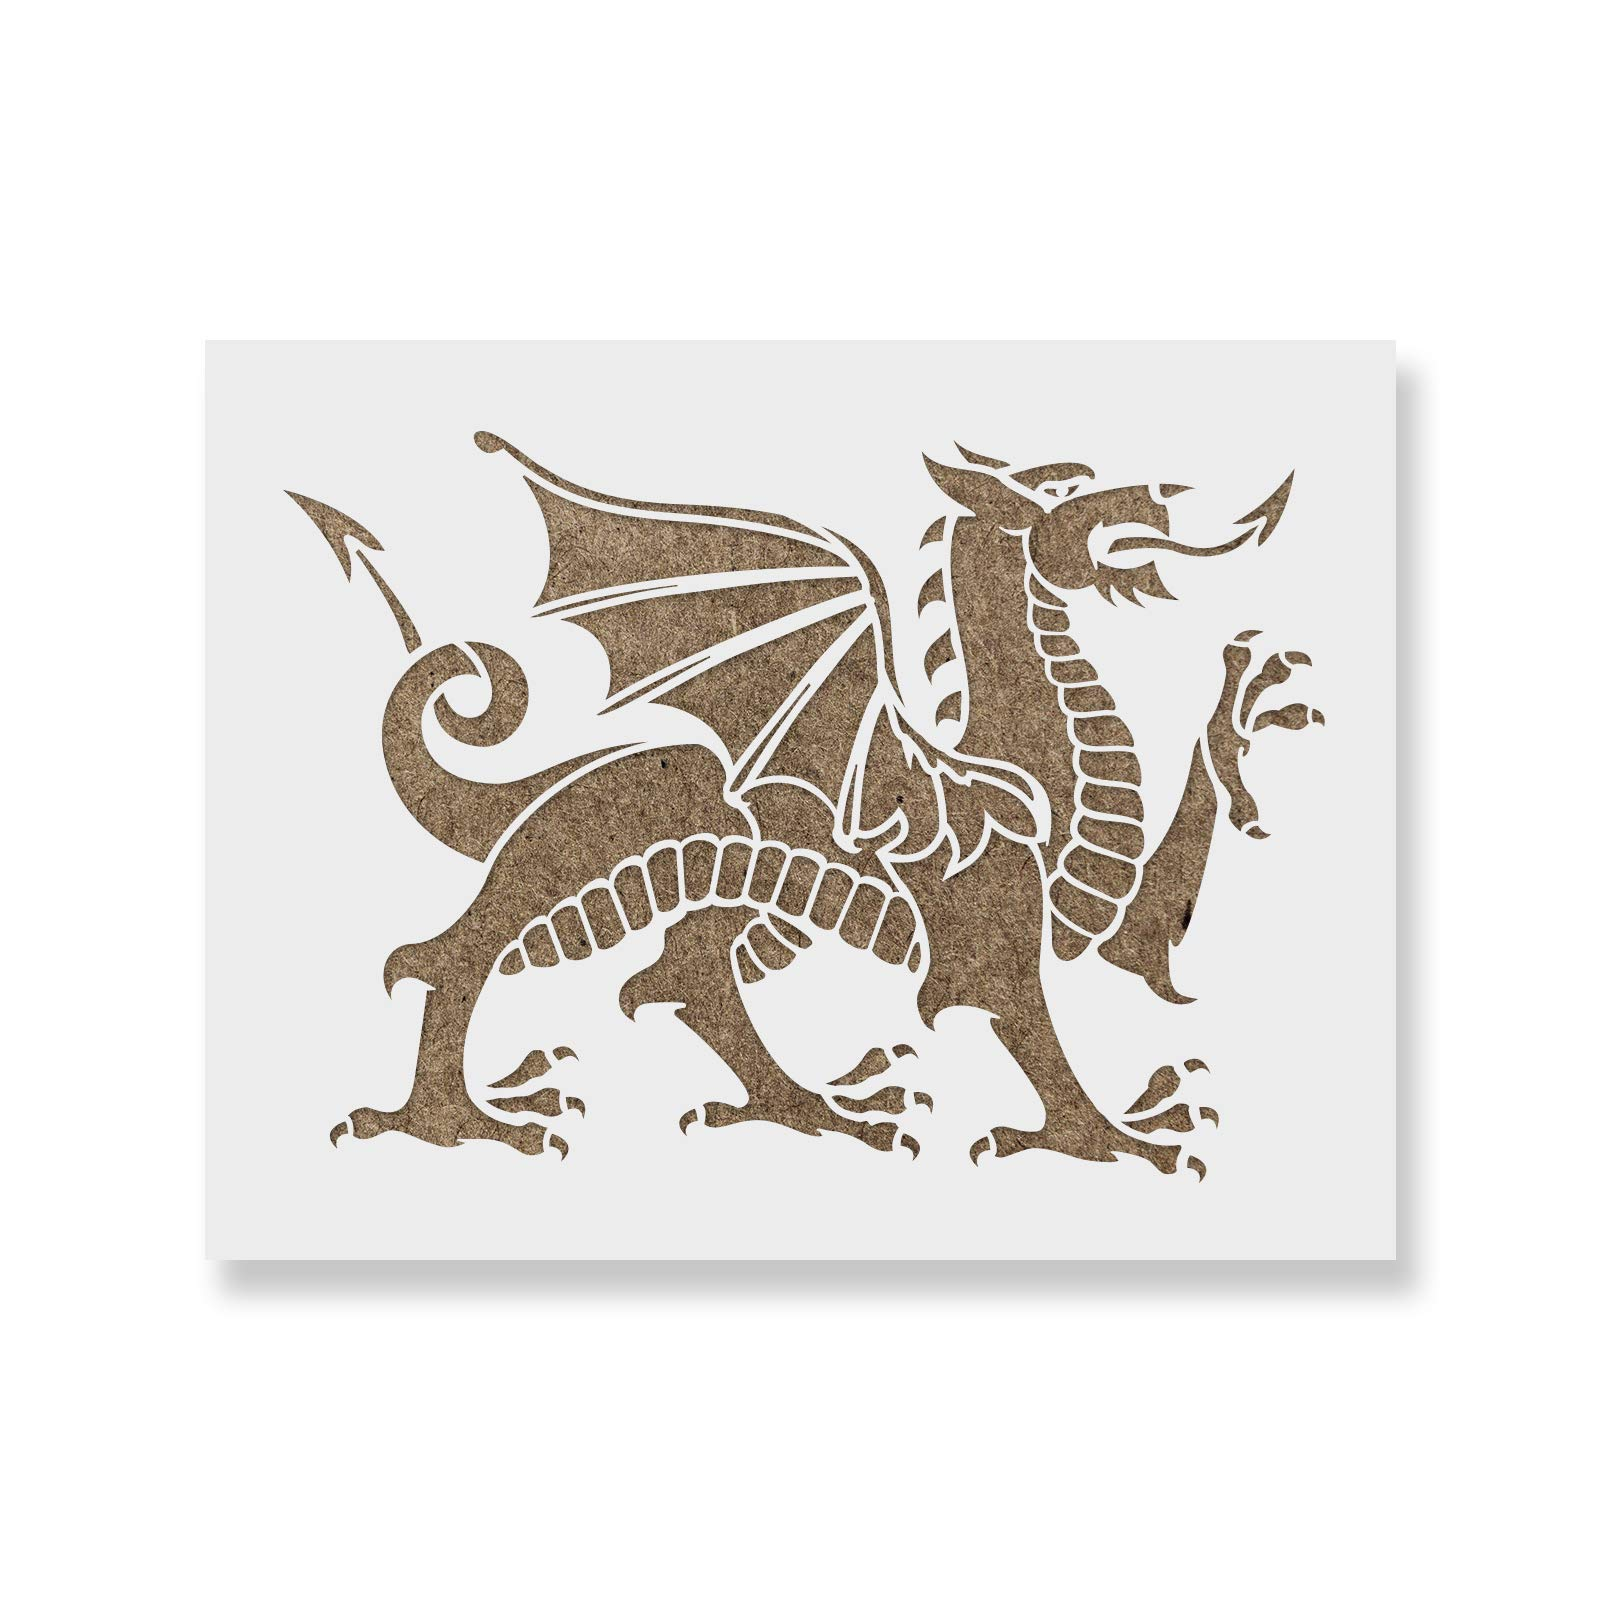 Medieval Dragon Stencil Template - Reusable Stencil with Multiple Sizes Available